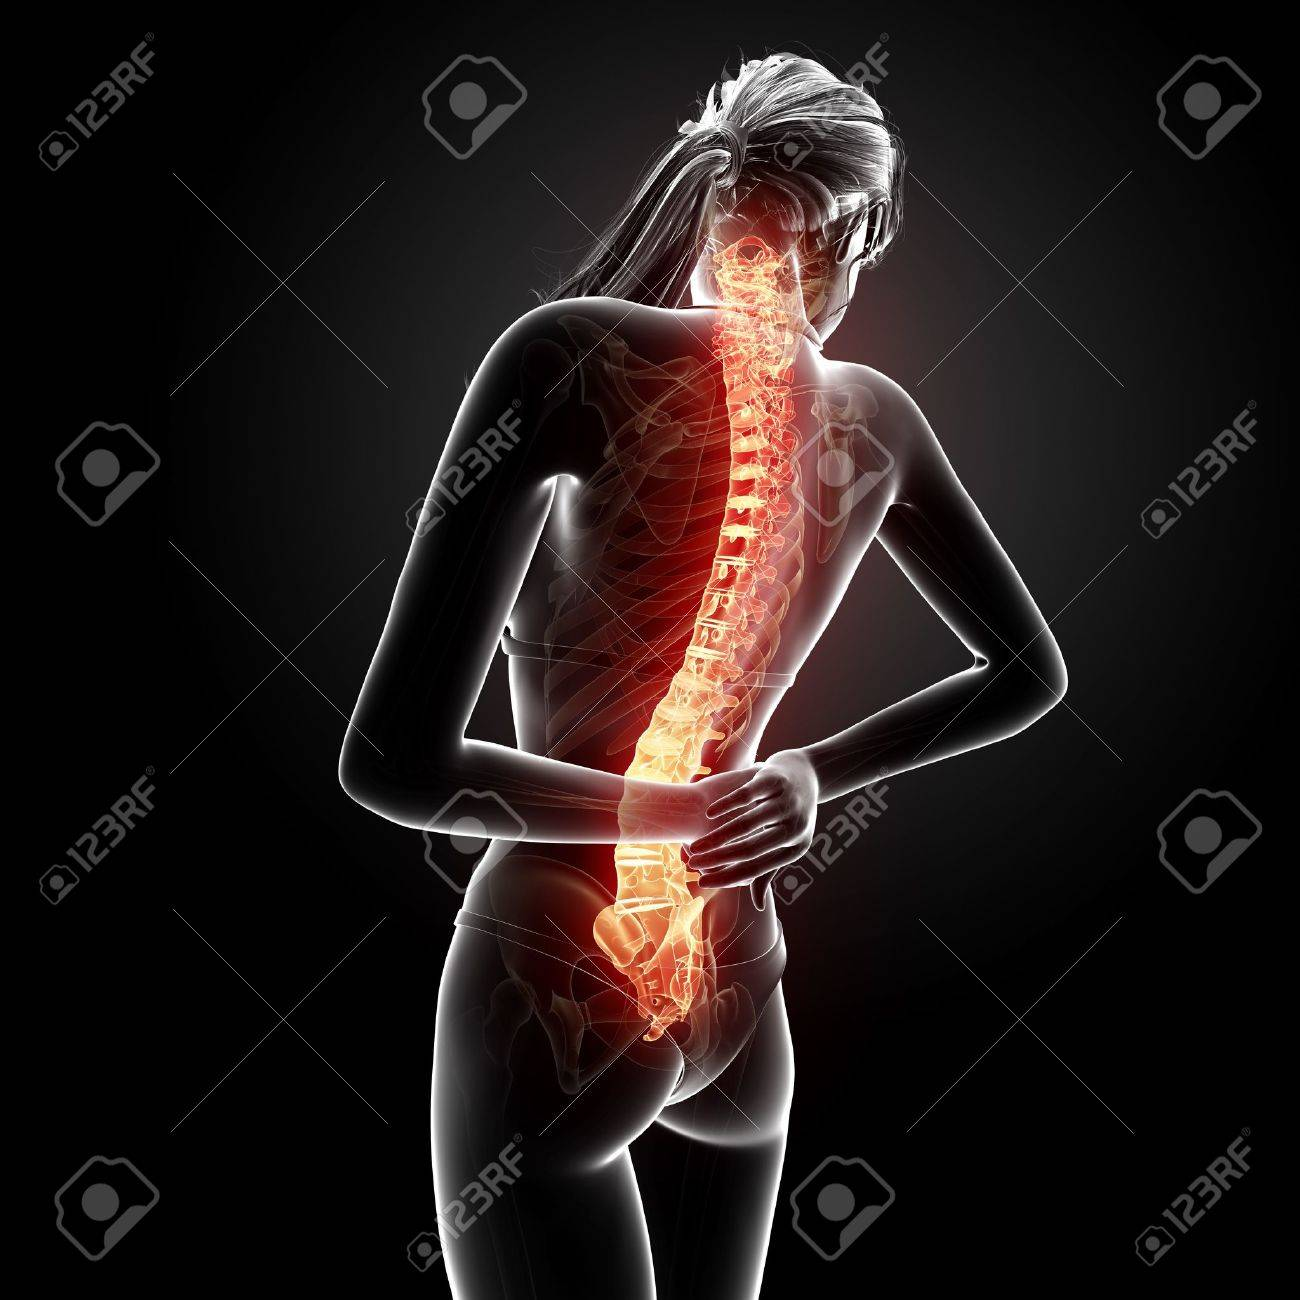 Female Back Pain Anatomy In Black Stock Photo, Picture And Royalty ...